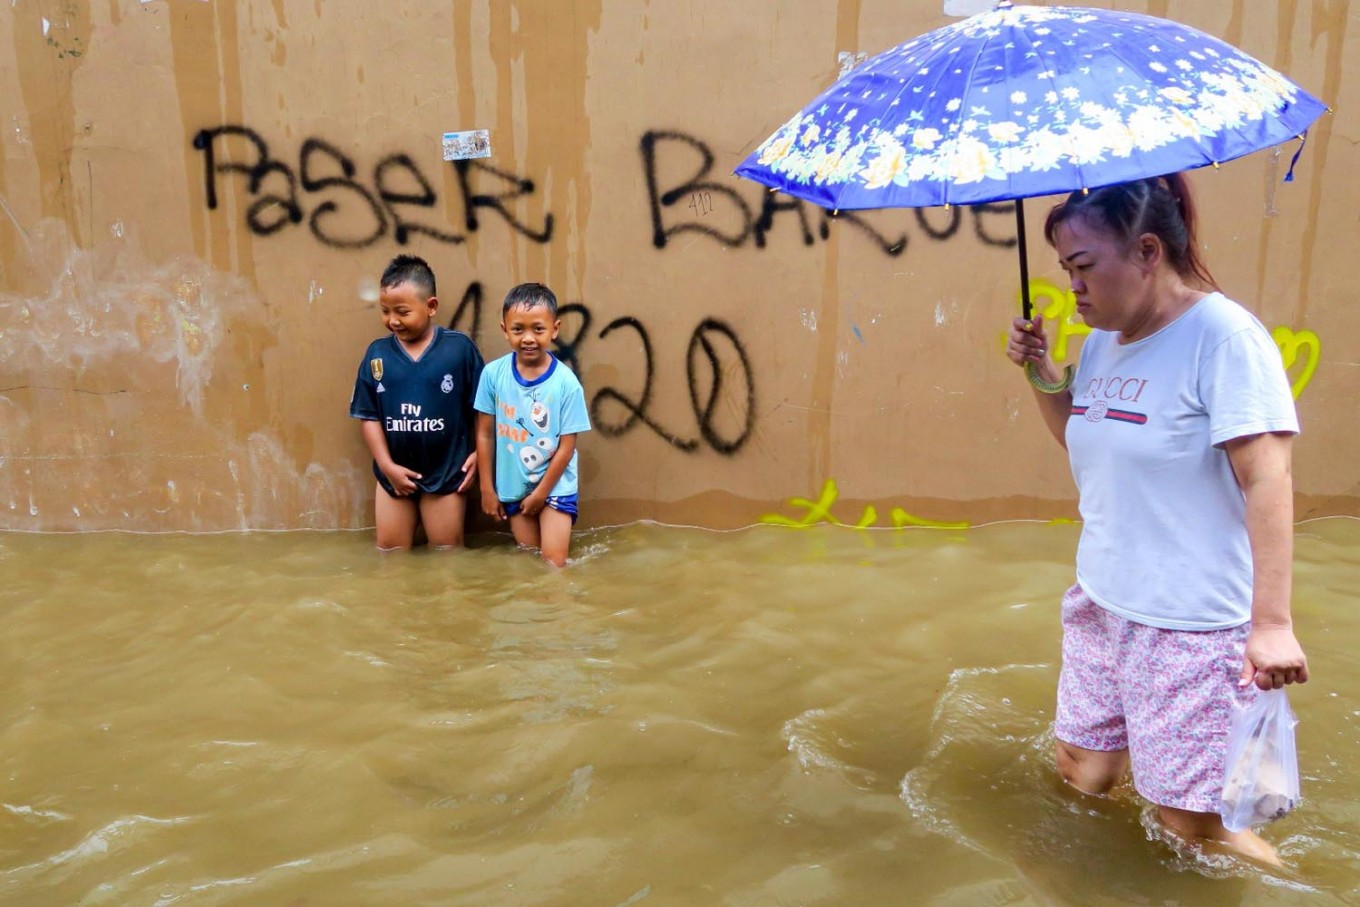 Tens of thousands caught in deadly Indonesian floods